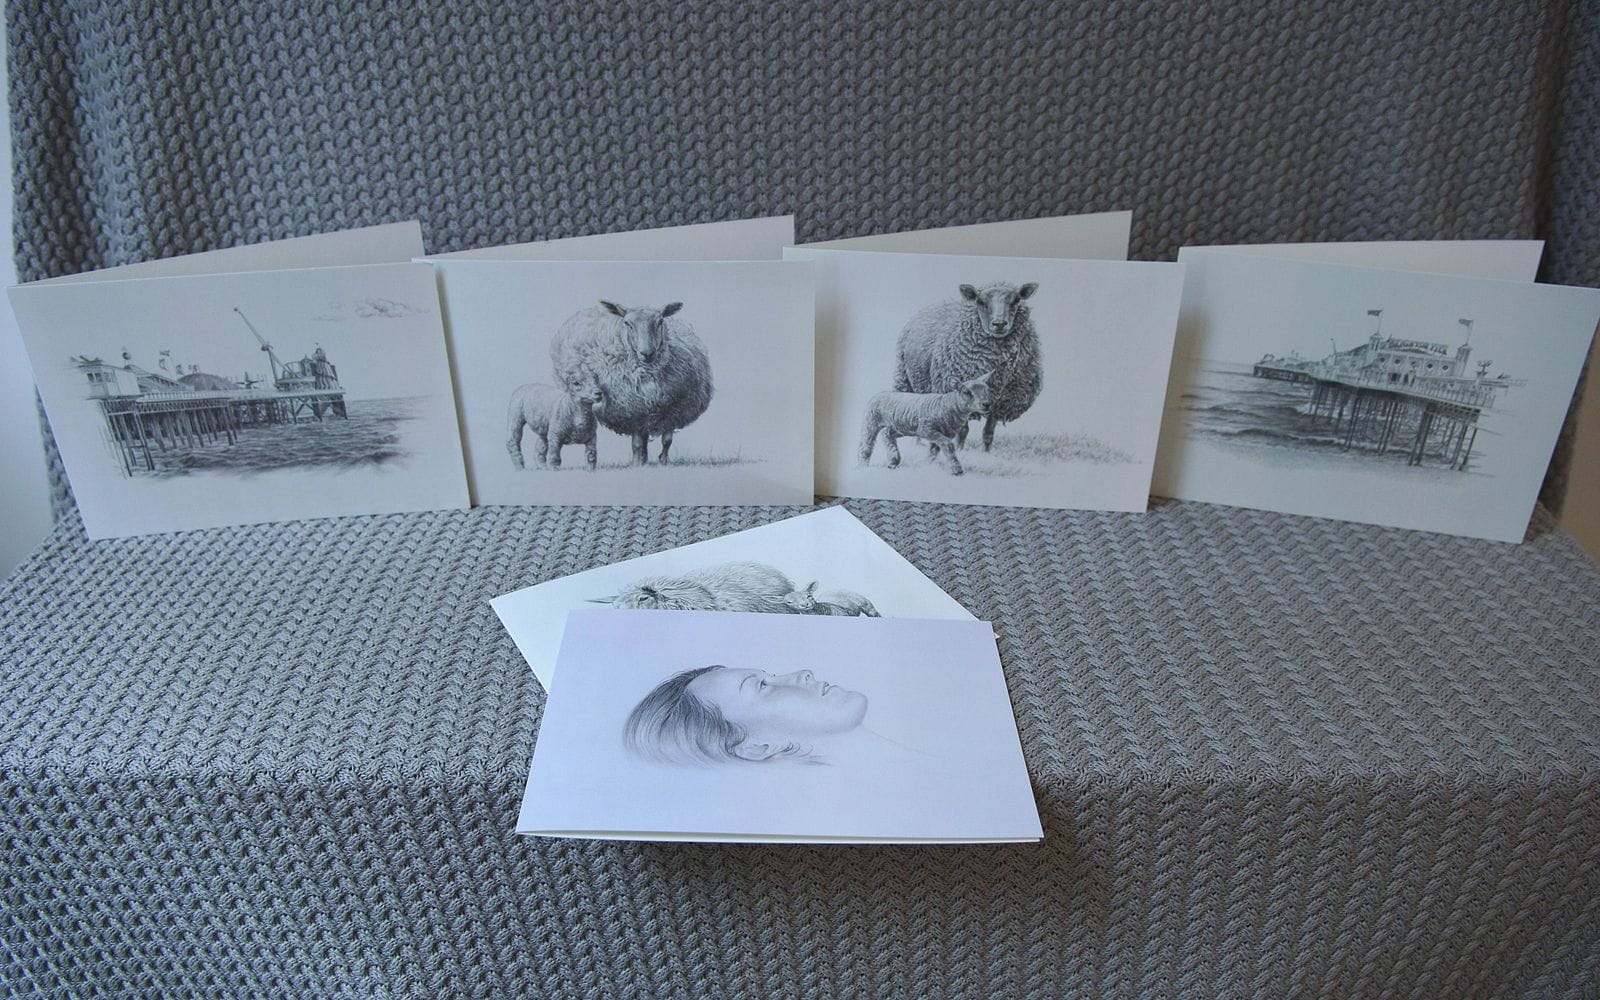 A selection of black & white greeting cards arranged on a table. Some of the greeting cards feature pencil drawings of sheep.